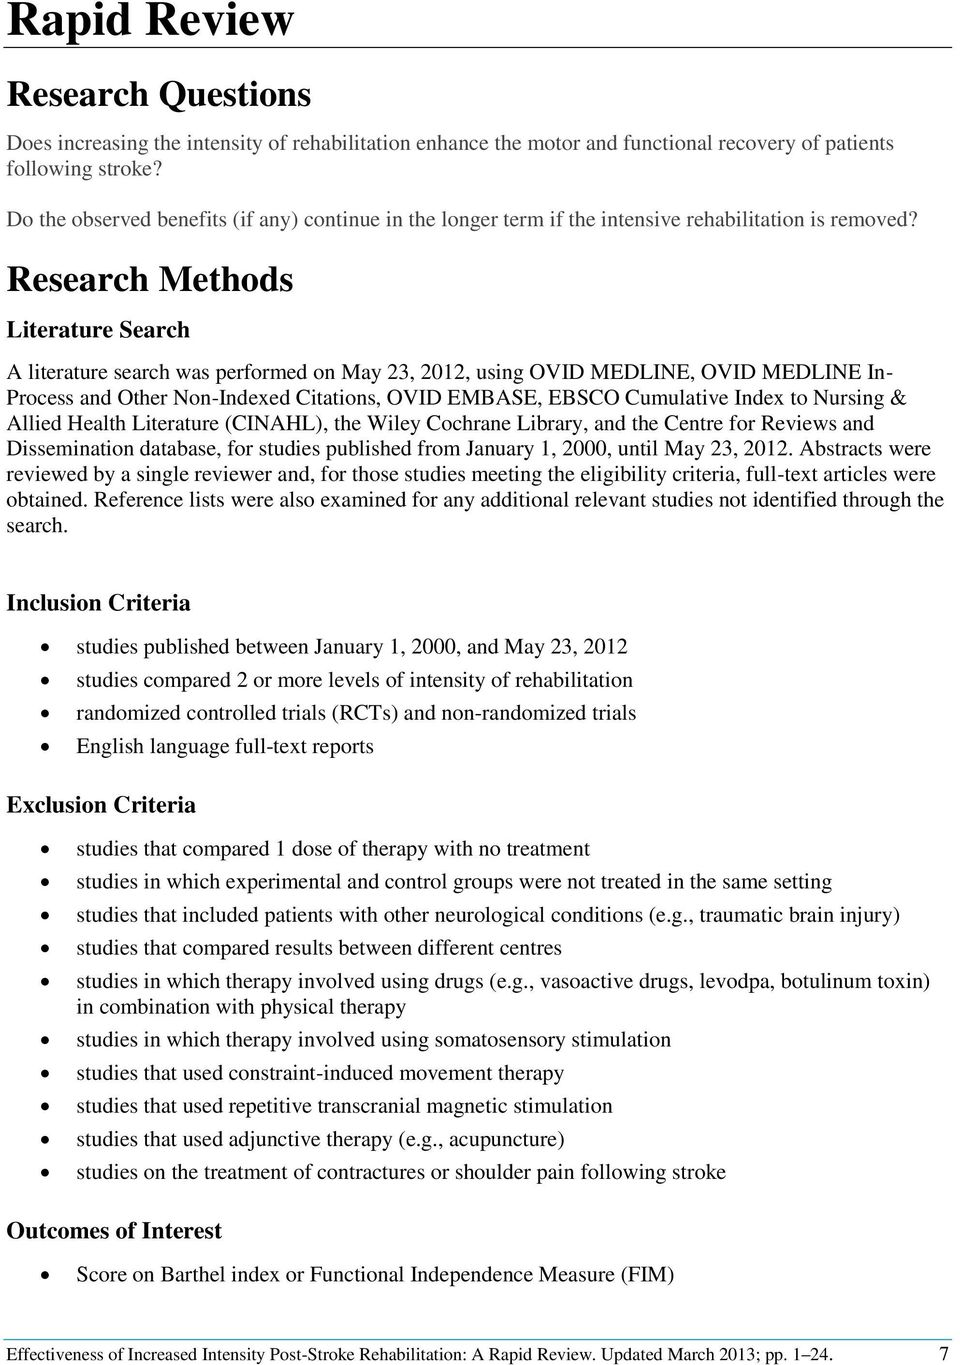 Research Methods Literature Search A literature search was performed on May 23, 2012, using OVID MEDLINE, OVID MEDLINE In- Process and Other Non-Indexed Citations, OVID EMBASE, EBSCO Cumulative Index